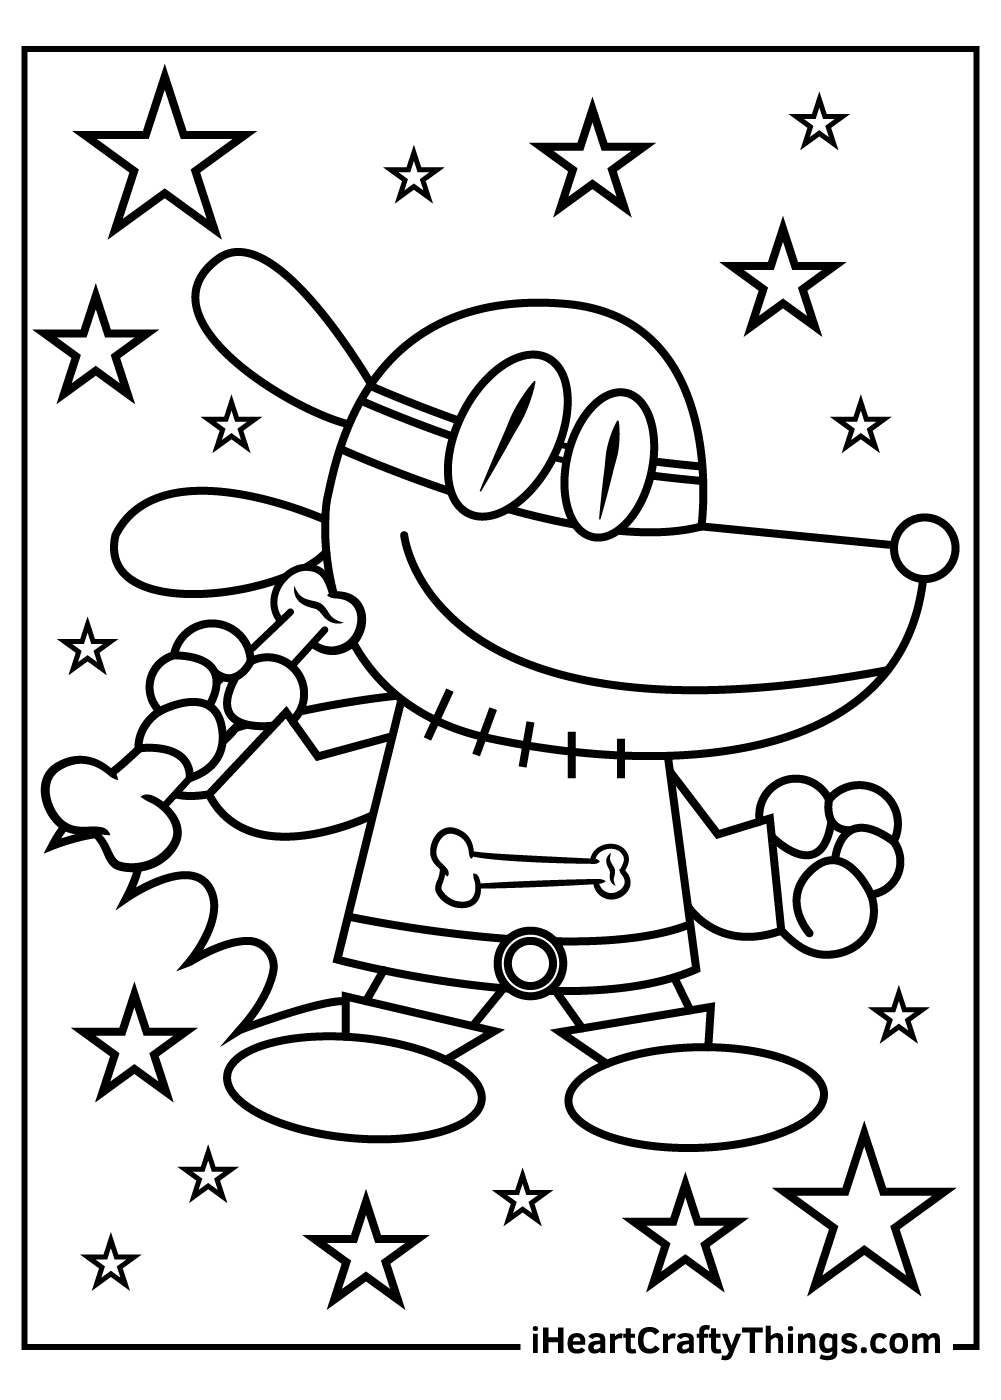 cool dog man coloring pages free printables